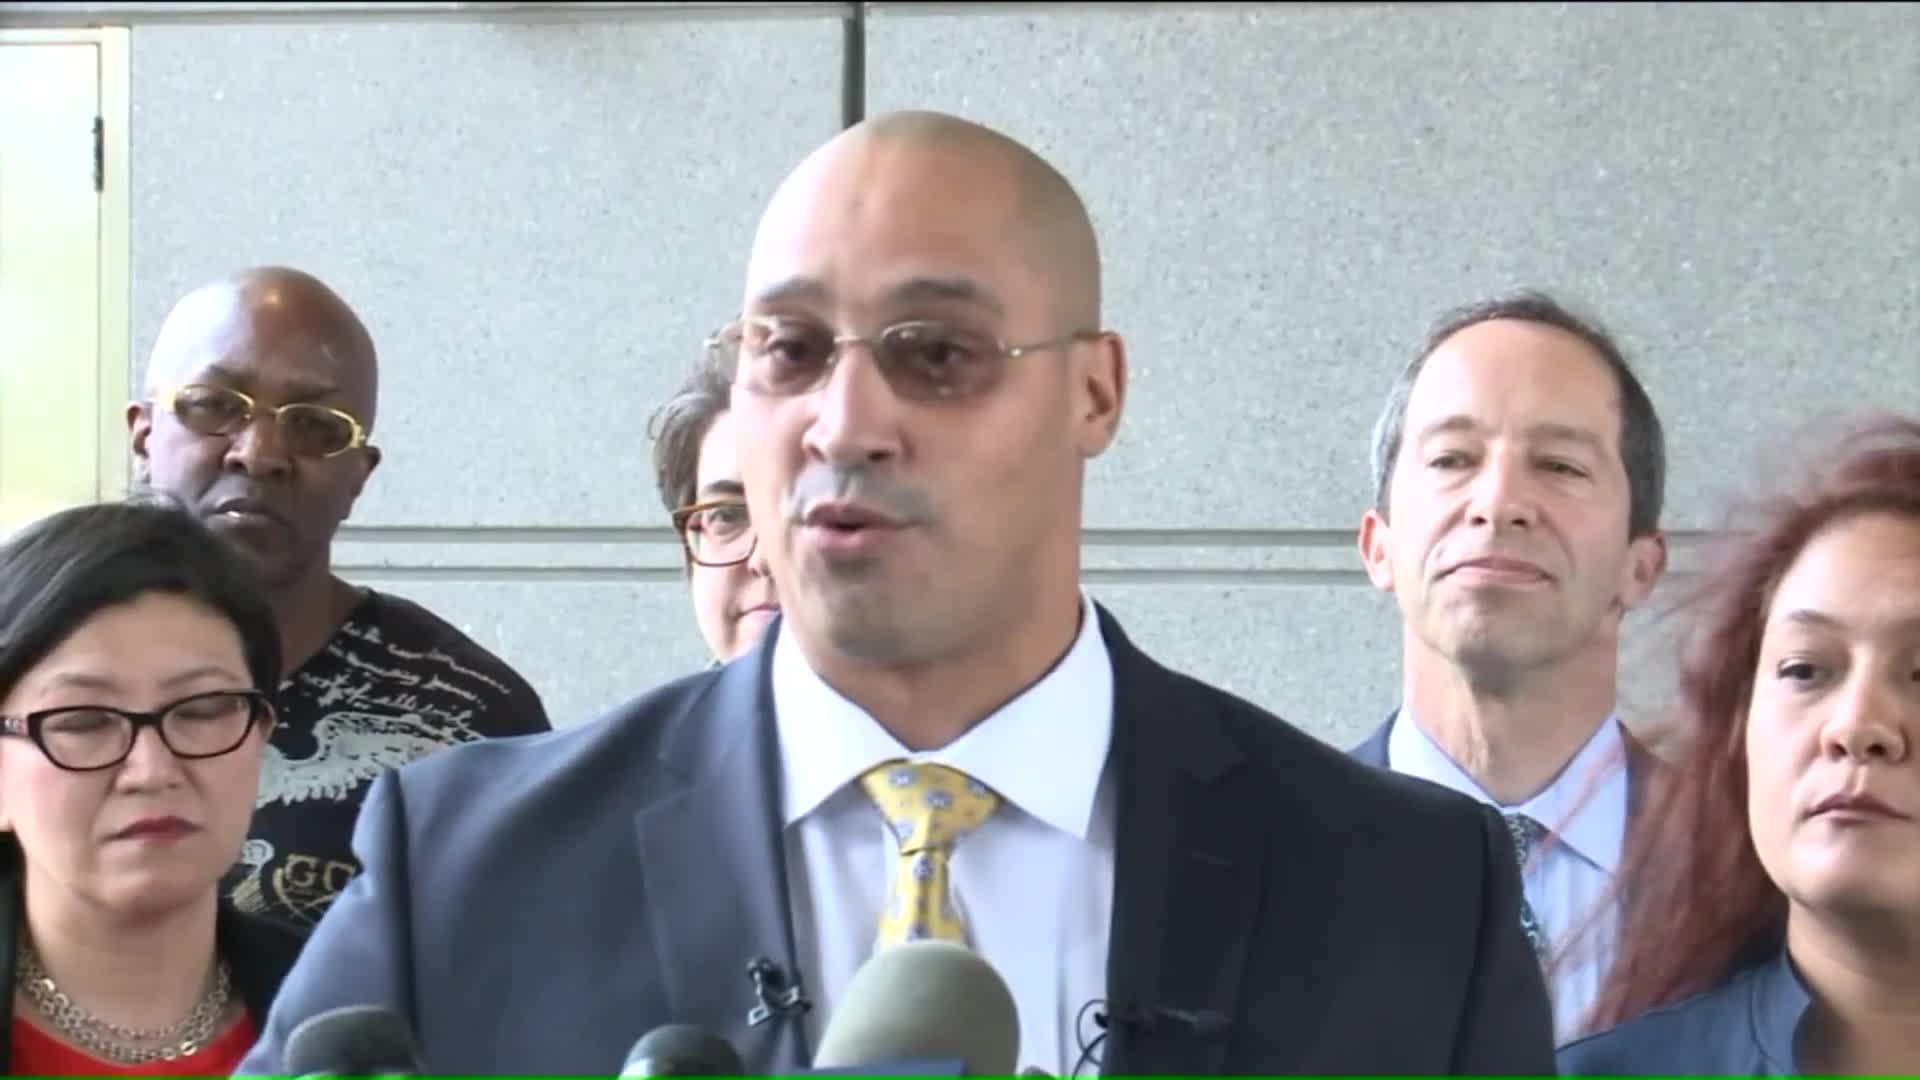 Man Wrongfully Convicted For 1996 Murder Rejects Dismissal In Court